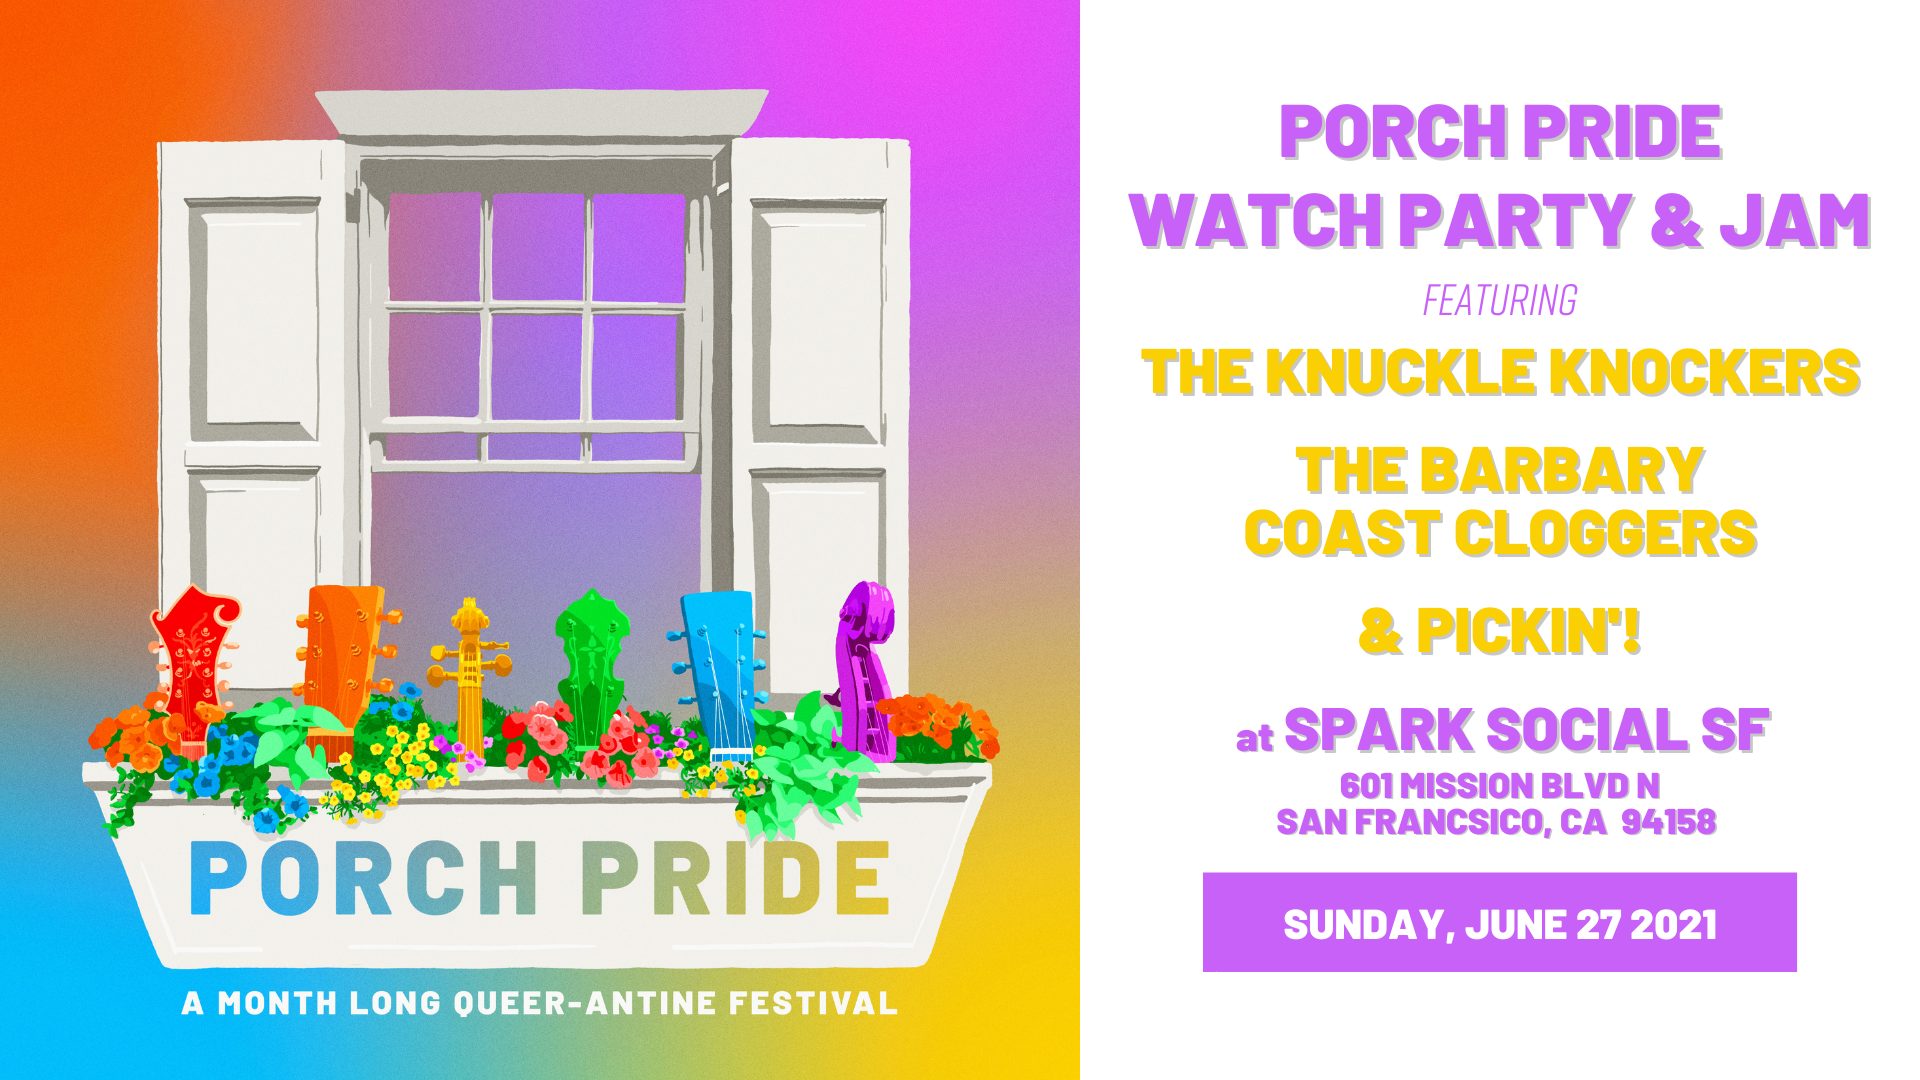 Porch Pride rainbow window box graphic on the right, with text on the right announcing the SF Porch Pride watch party & jam. All details are listed in plain-text below.